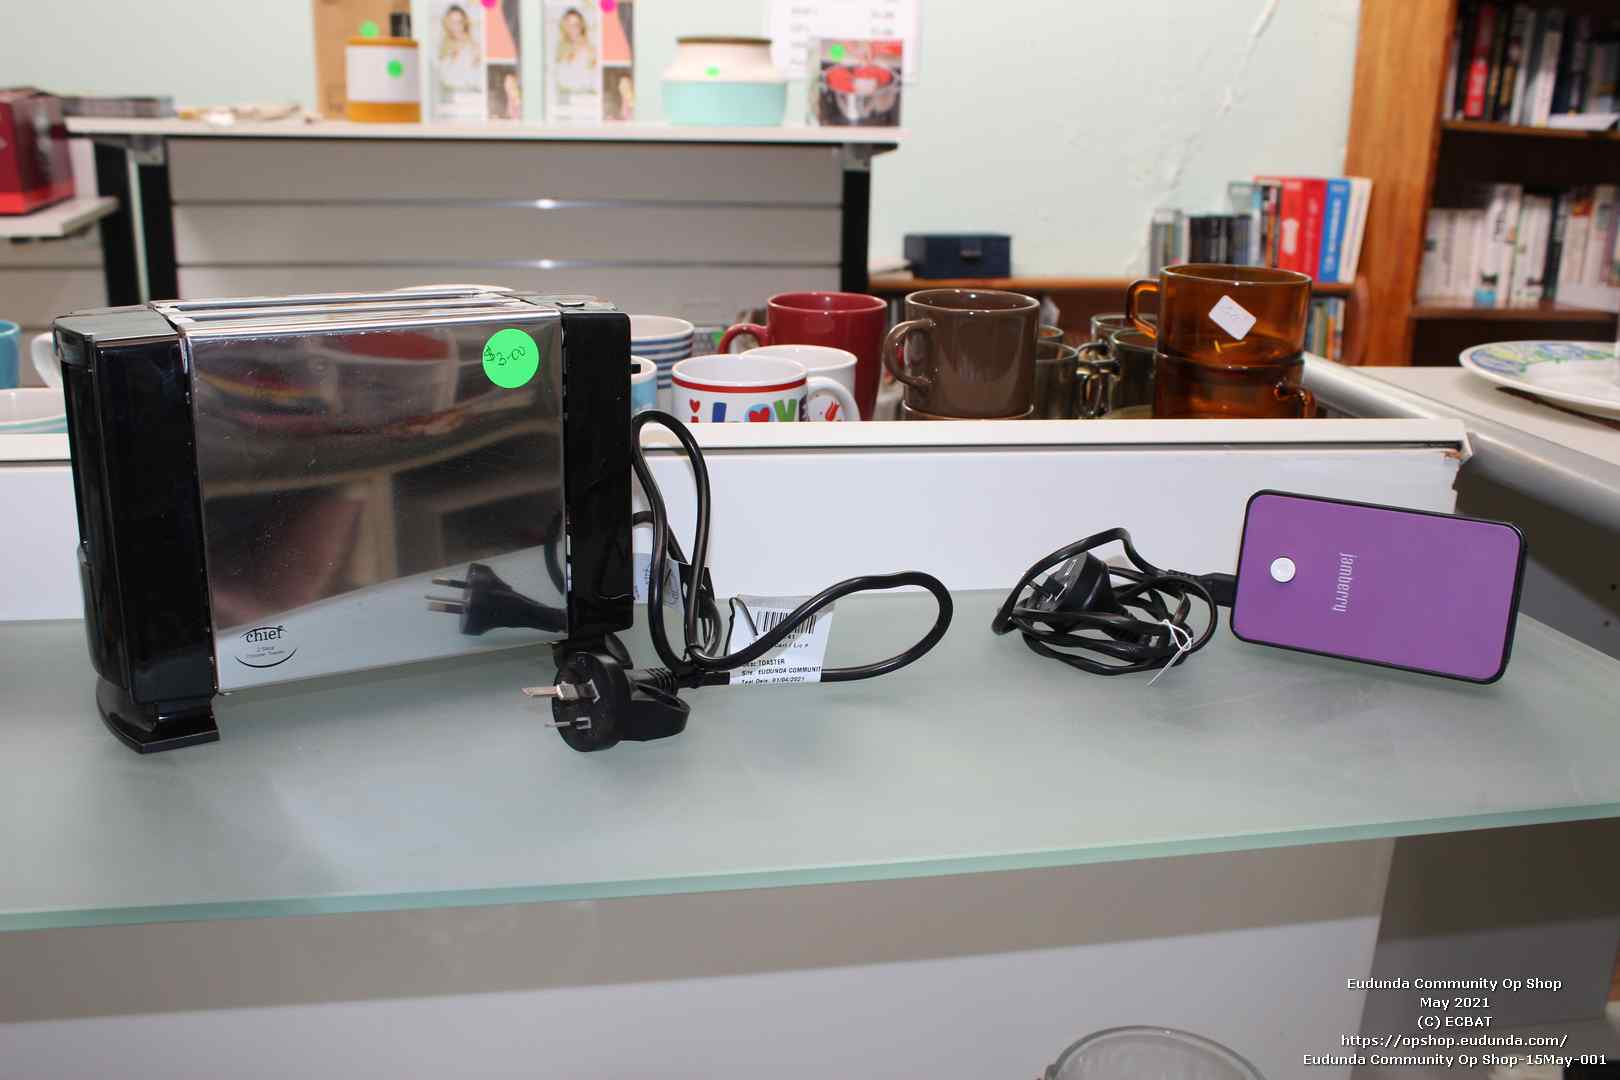 Eudunda Community Op Shop-15May-001 - Electrical Goods Now Available